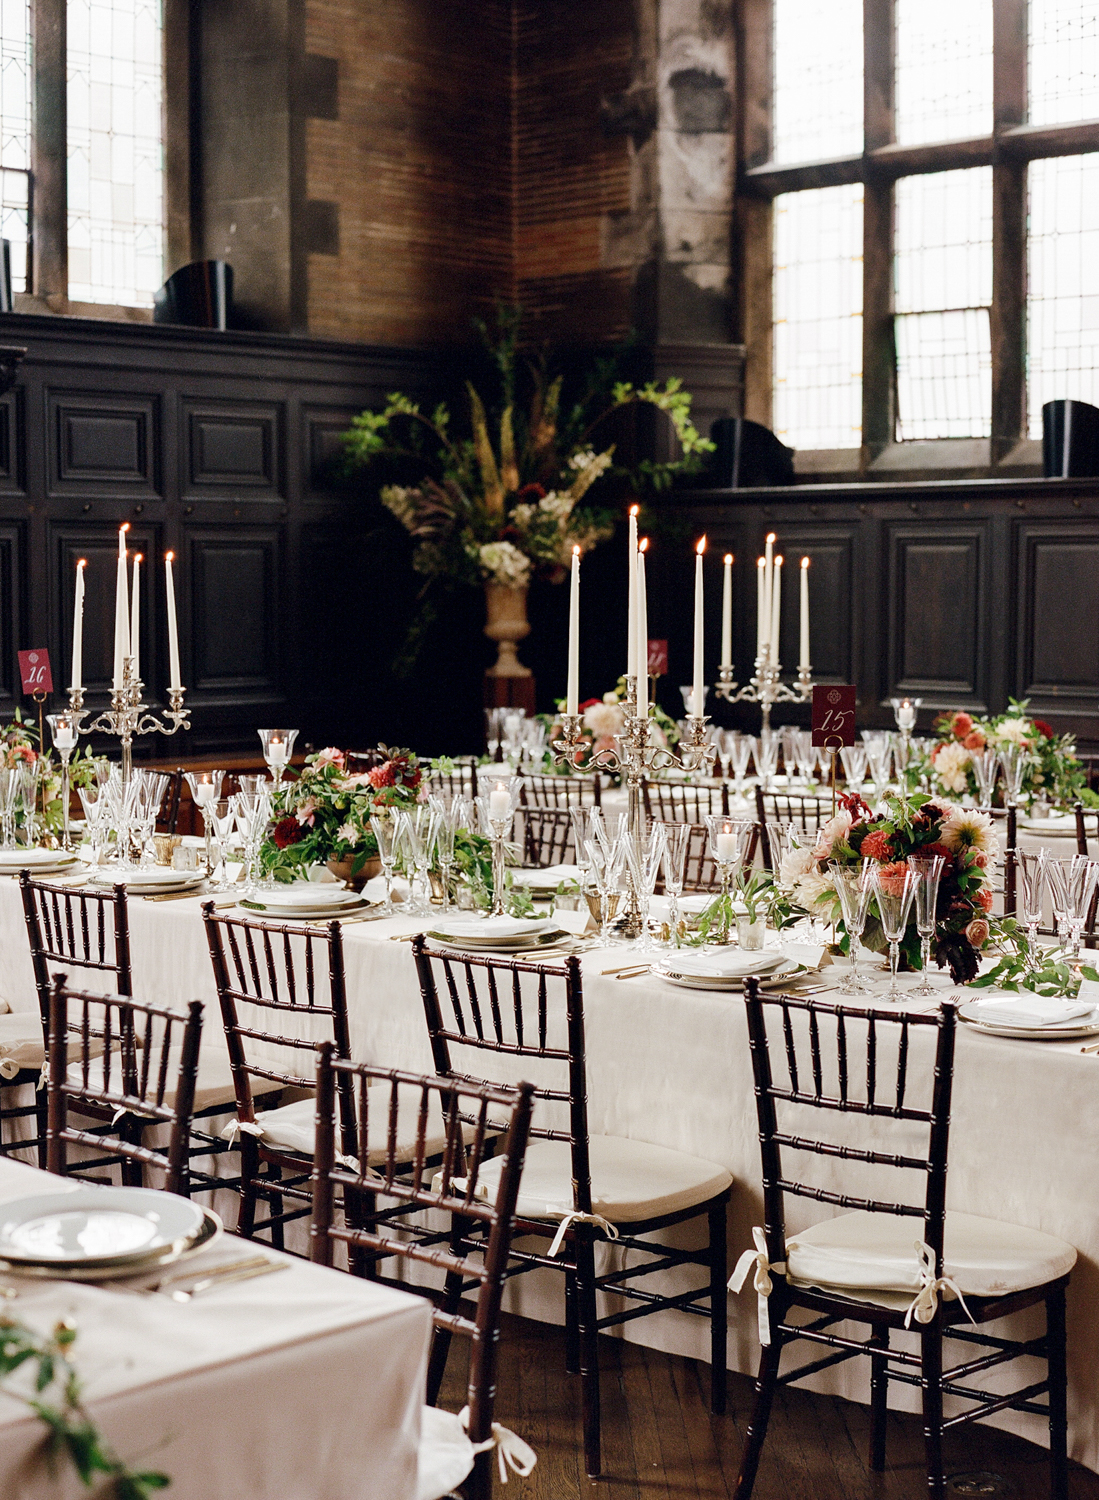 Old World NYC Wedding at the Highline Hotel - Flowers by Denise Fasanello Flowers - Photo by Heather Waraska 17.jpg